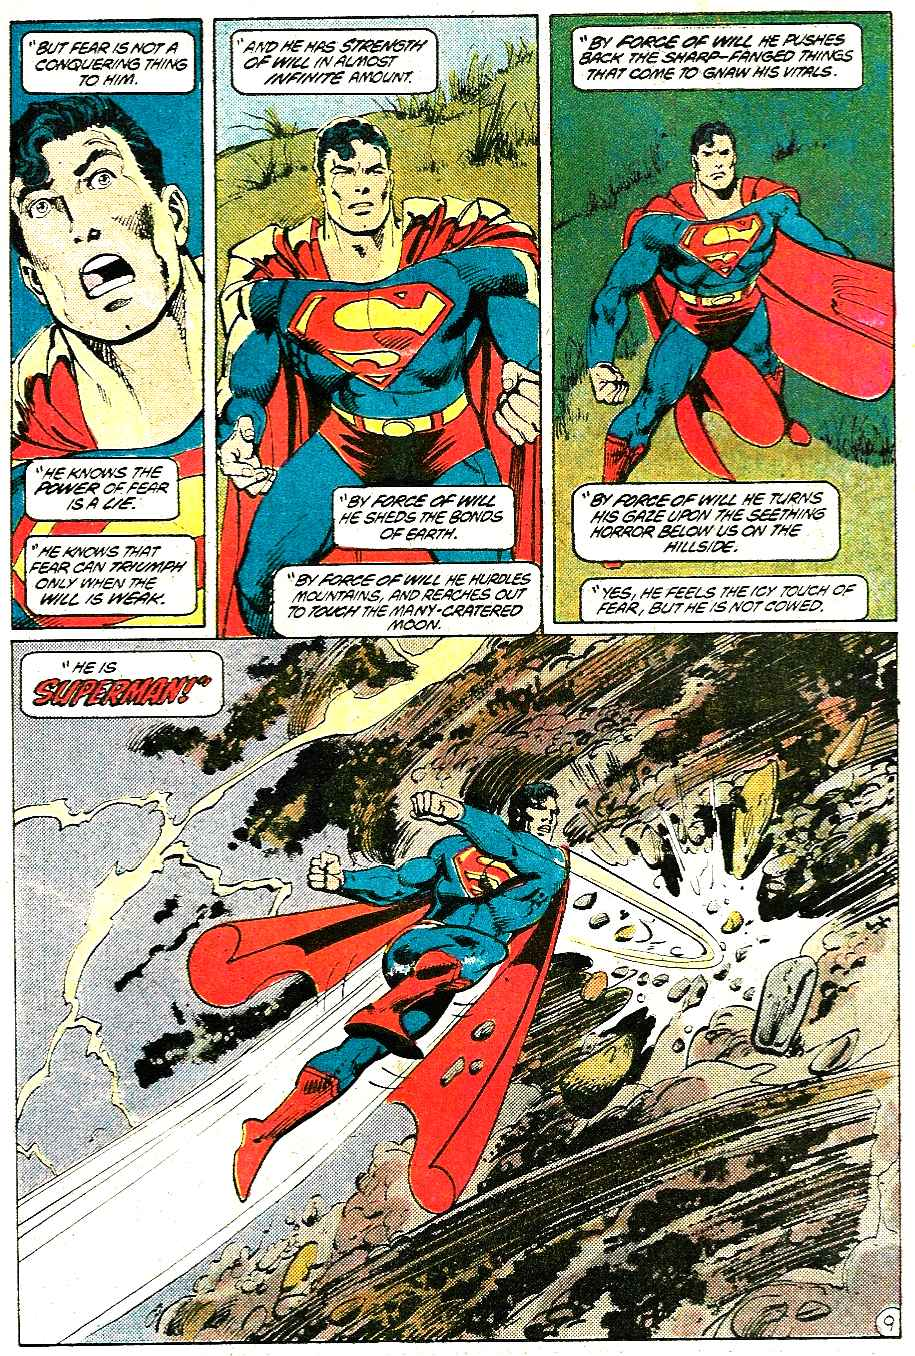 Read online Action Comics (1938) comic -  Issue #585 - 10